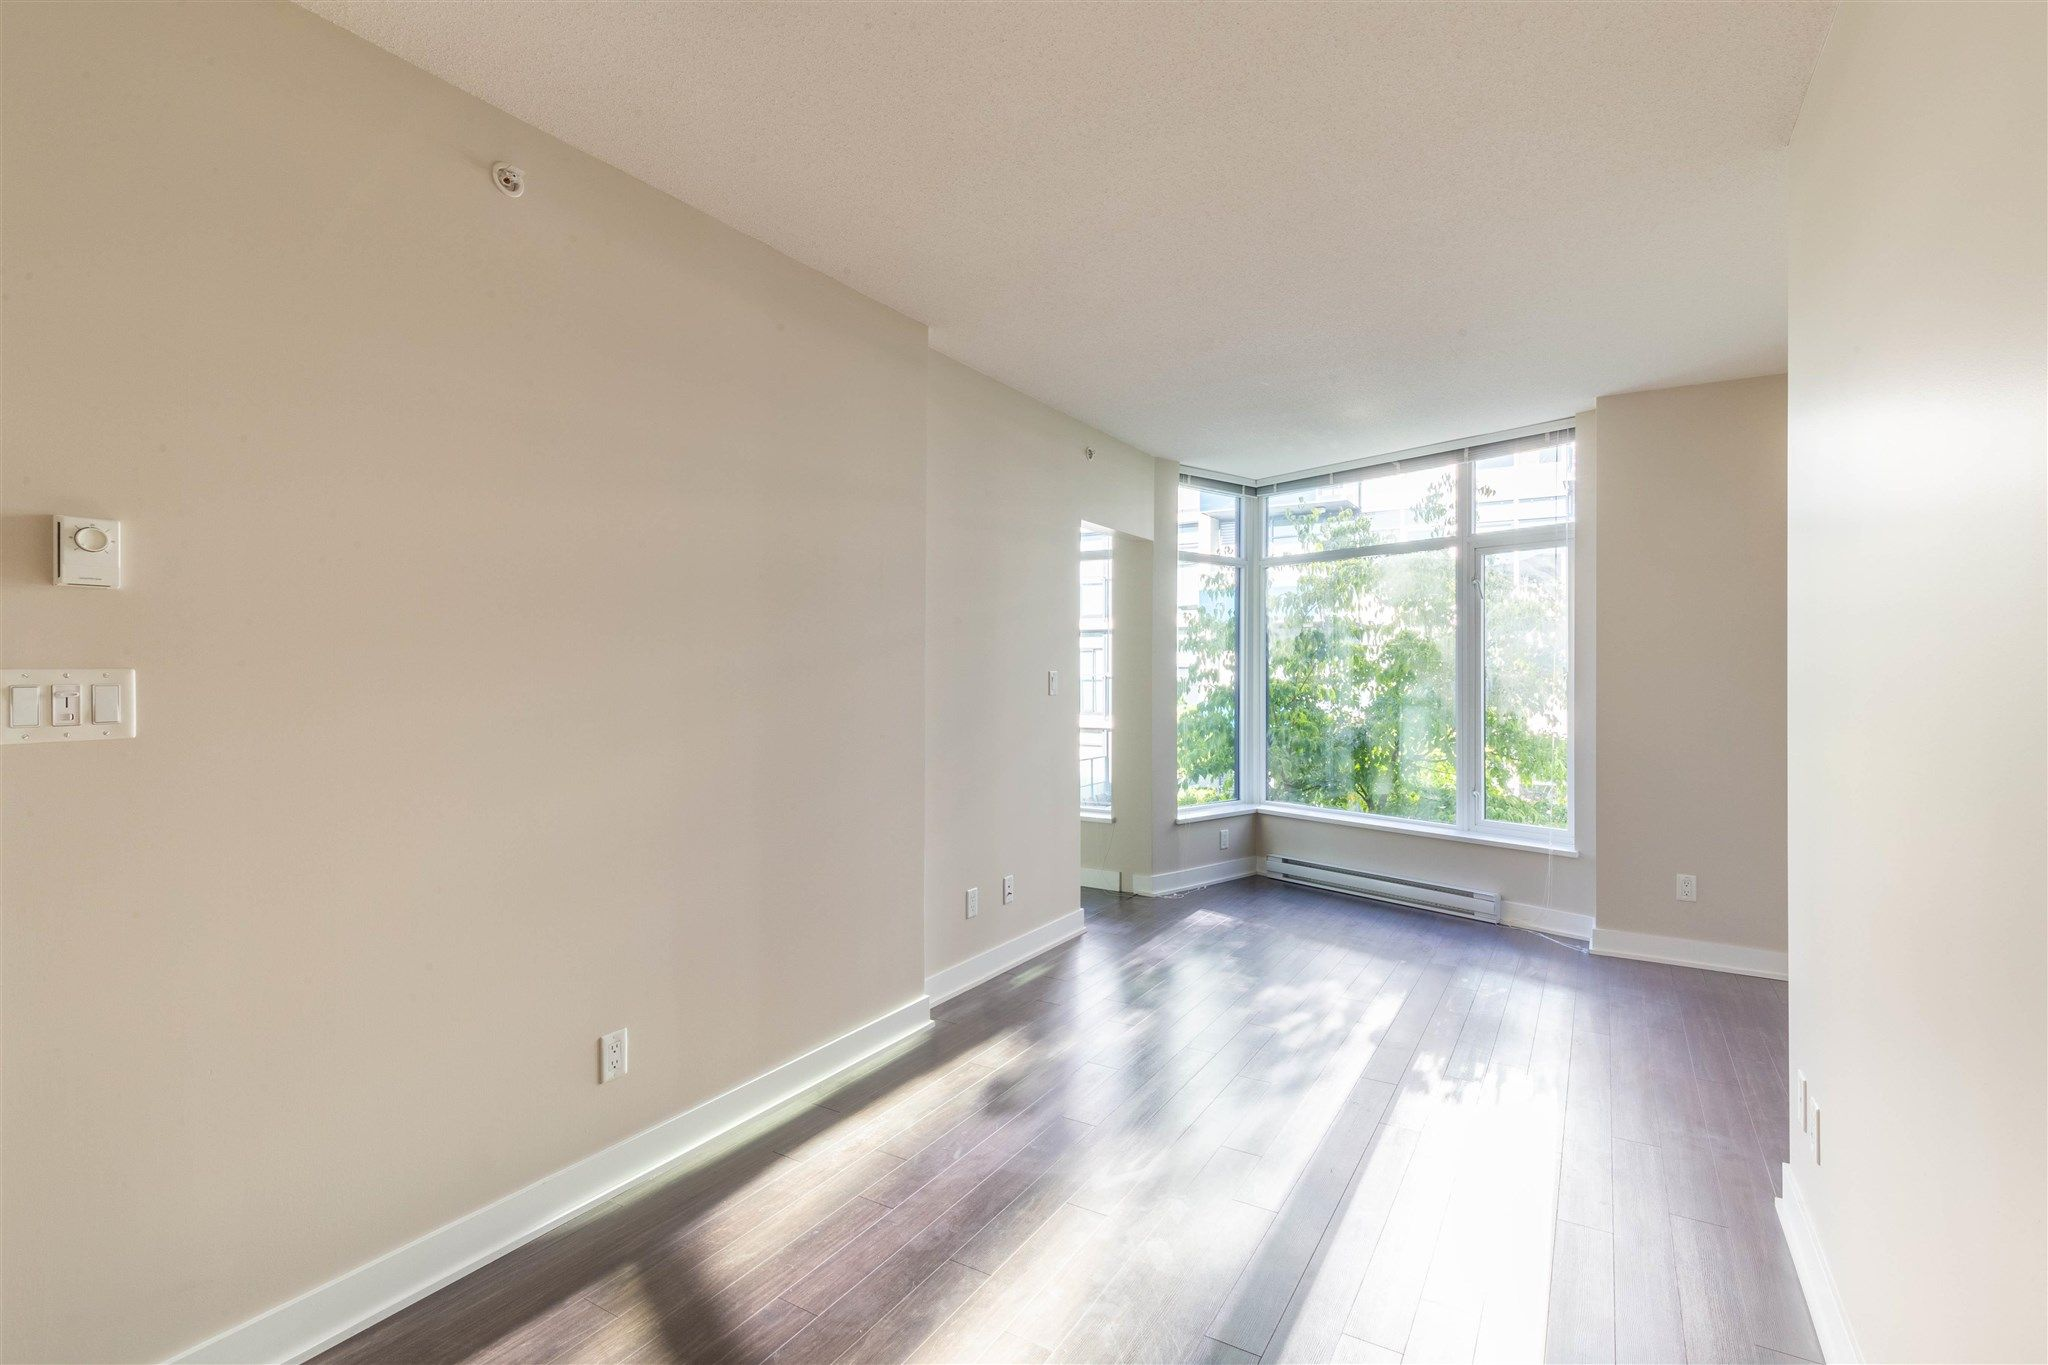 """Photo 11: Photos: 235 1777 W 7TH Avenue in Vancouver: Fairview VW Condo for sale in """"KITS 360"""" (Vancouver West)  : MLS®# R2607032"""